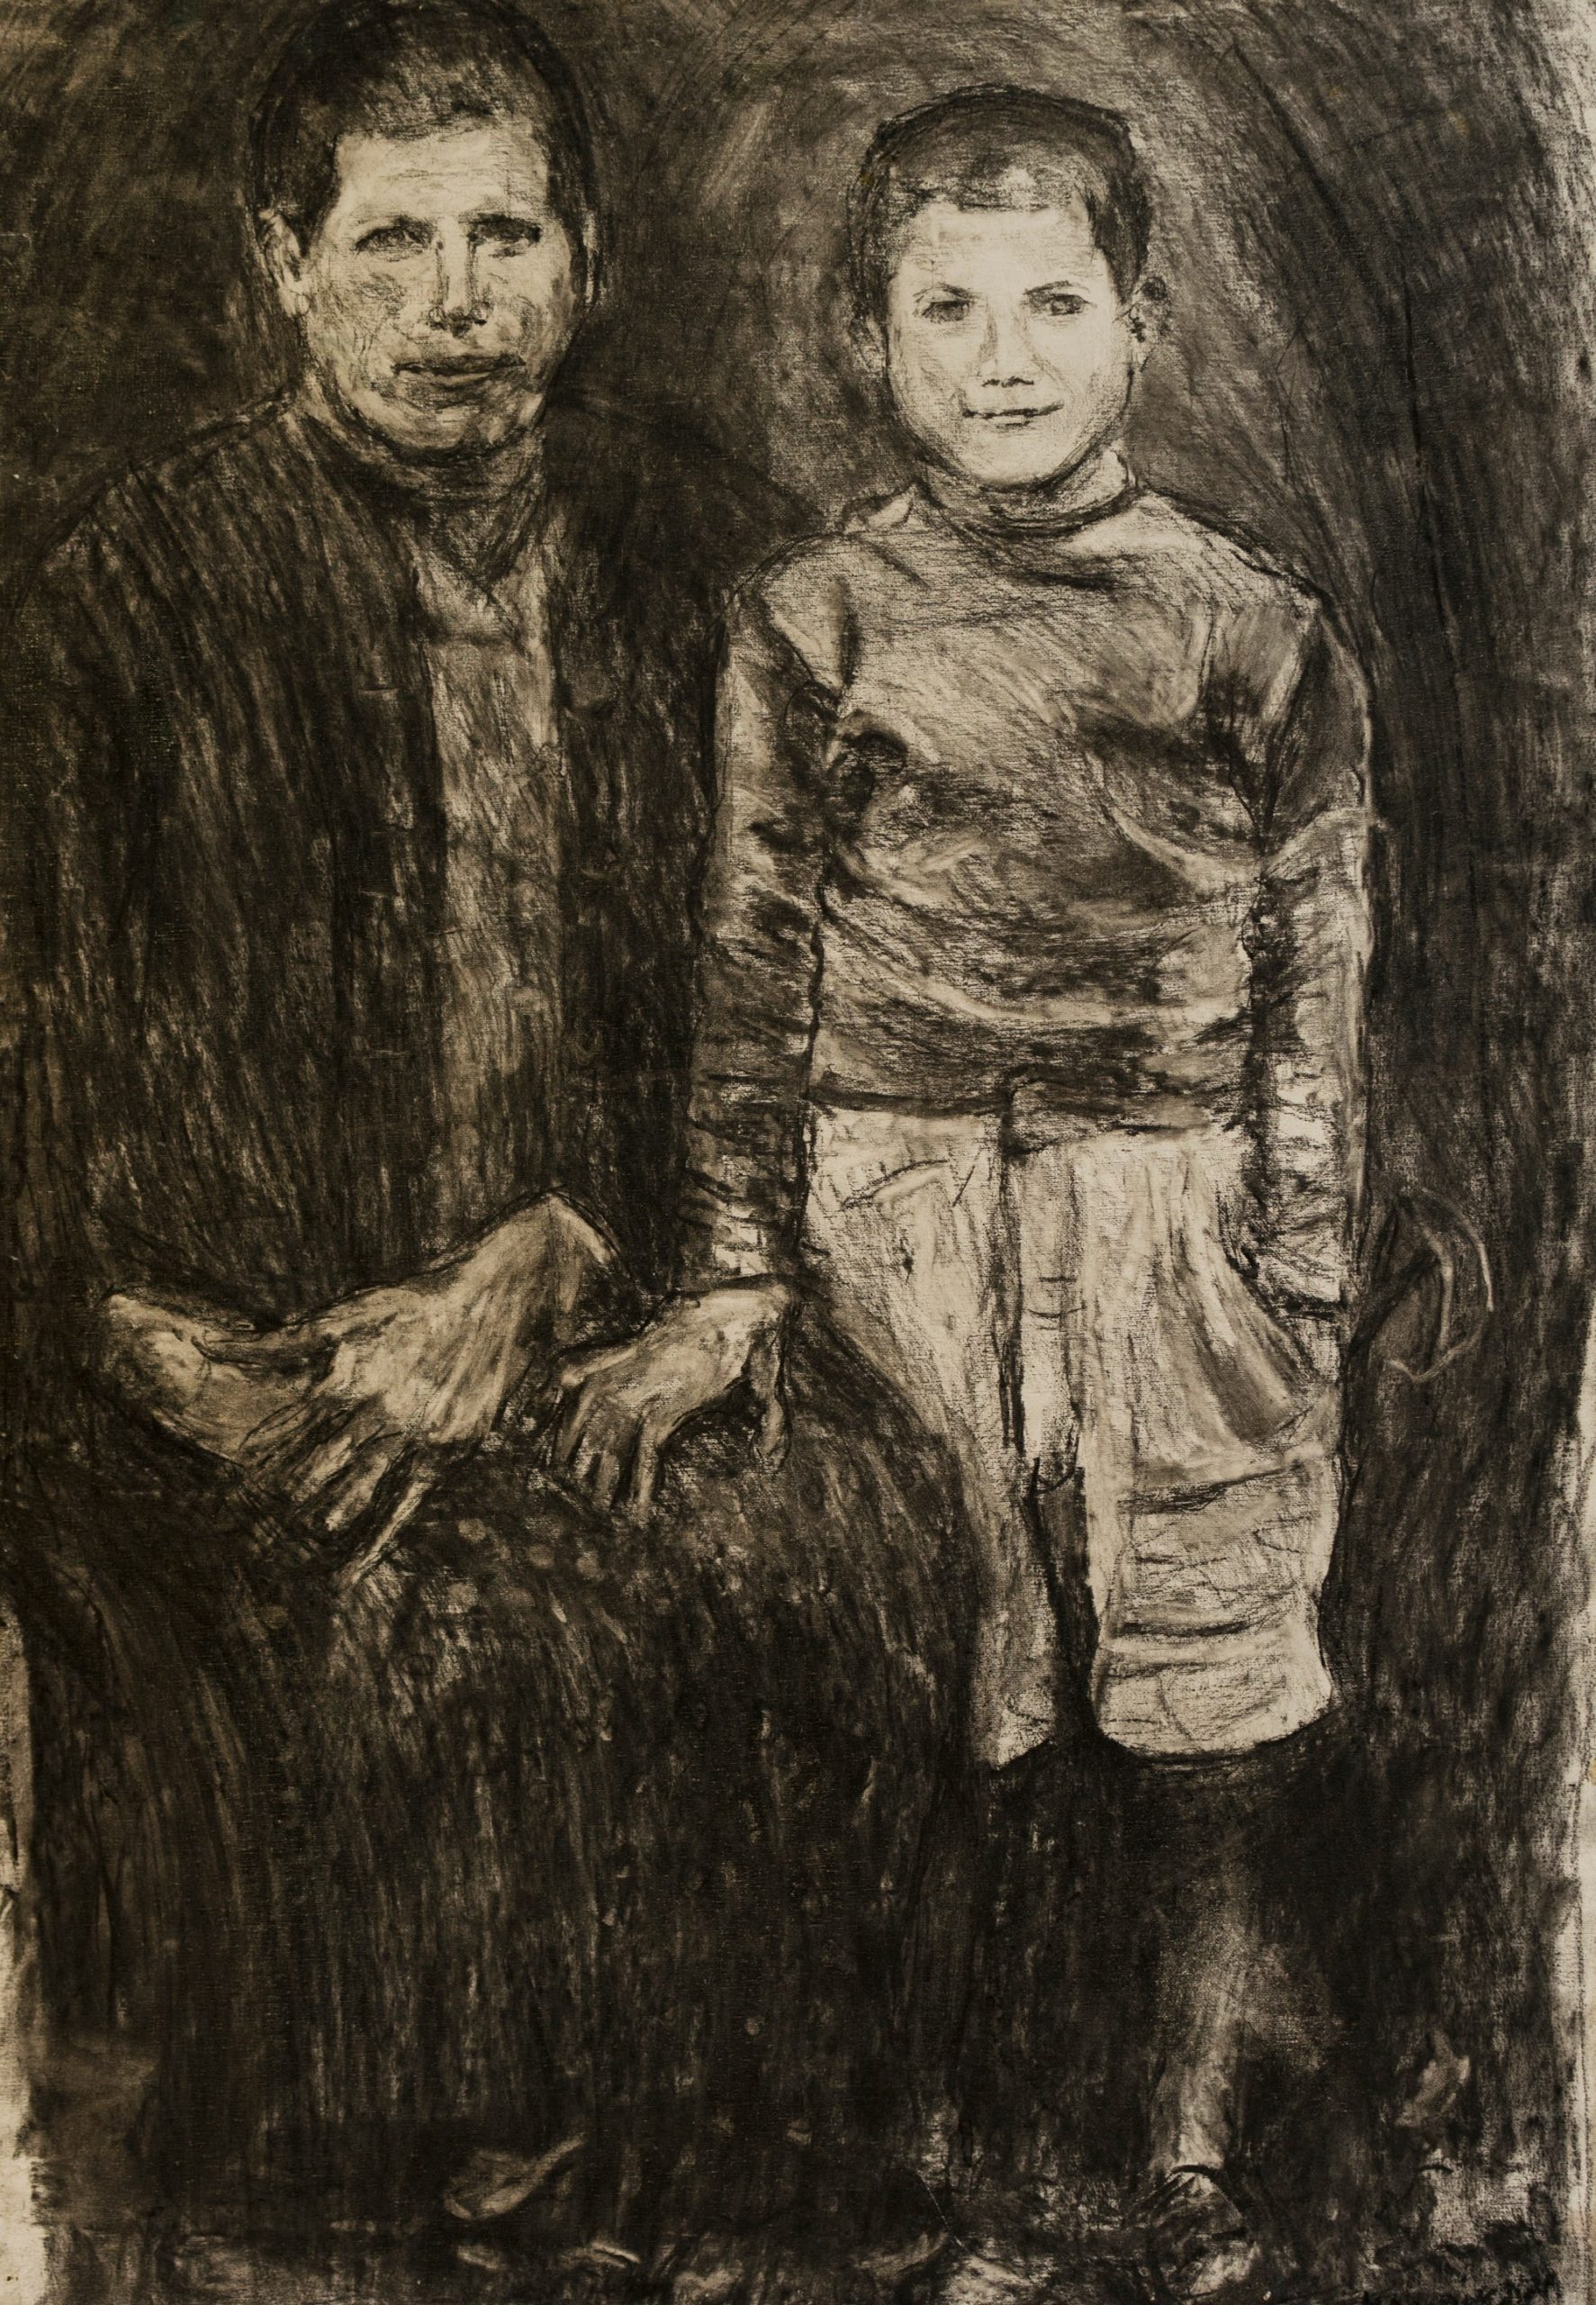 4Charcoal on camvas.Mother and son.195 6.x70 cm(2)